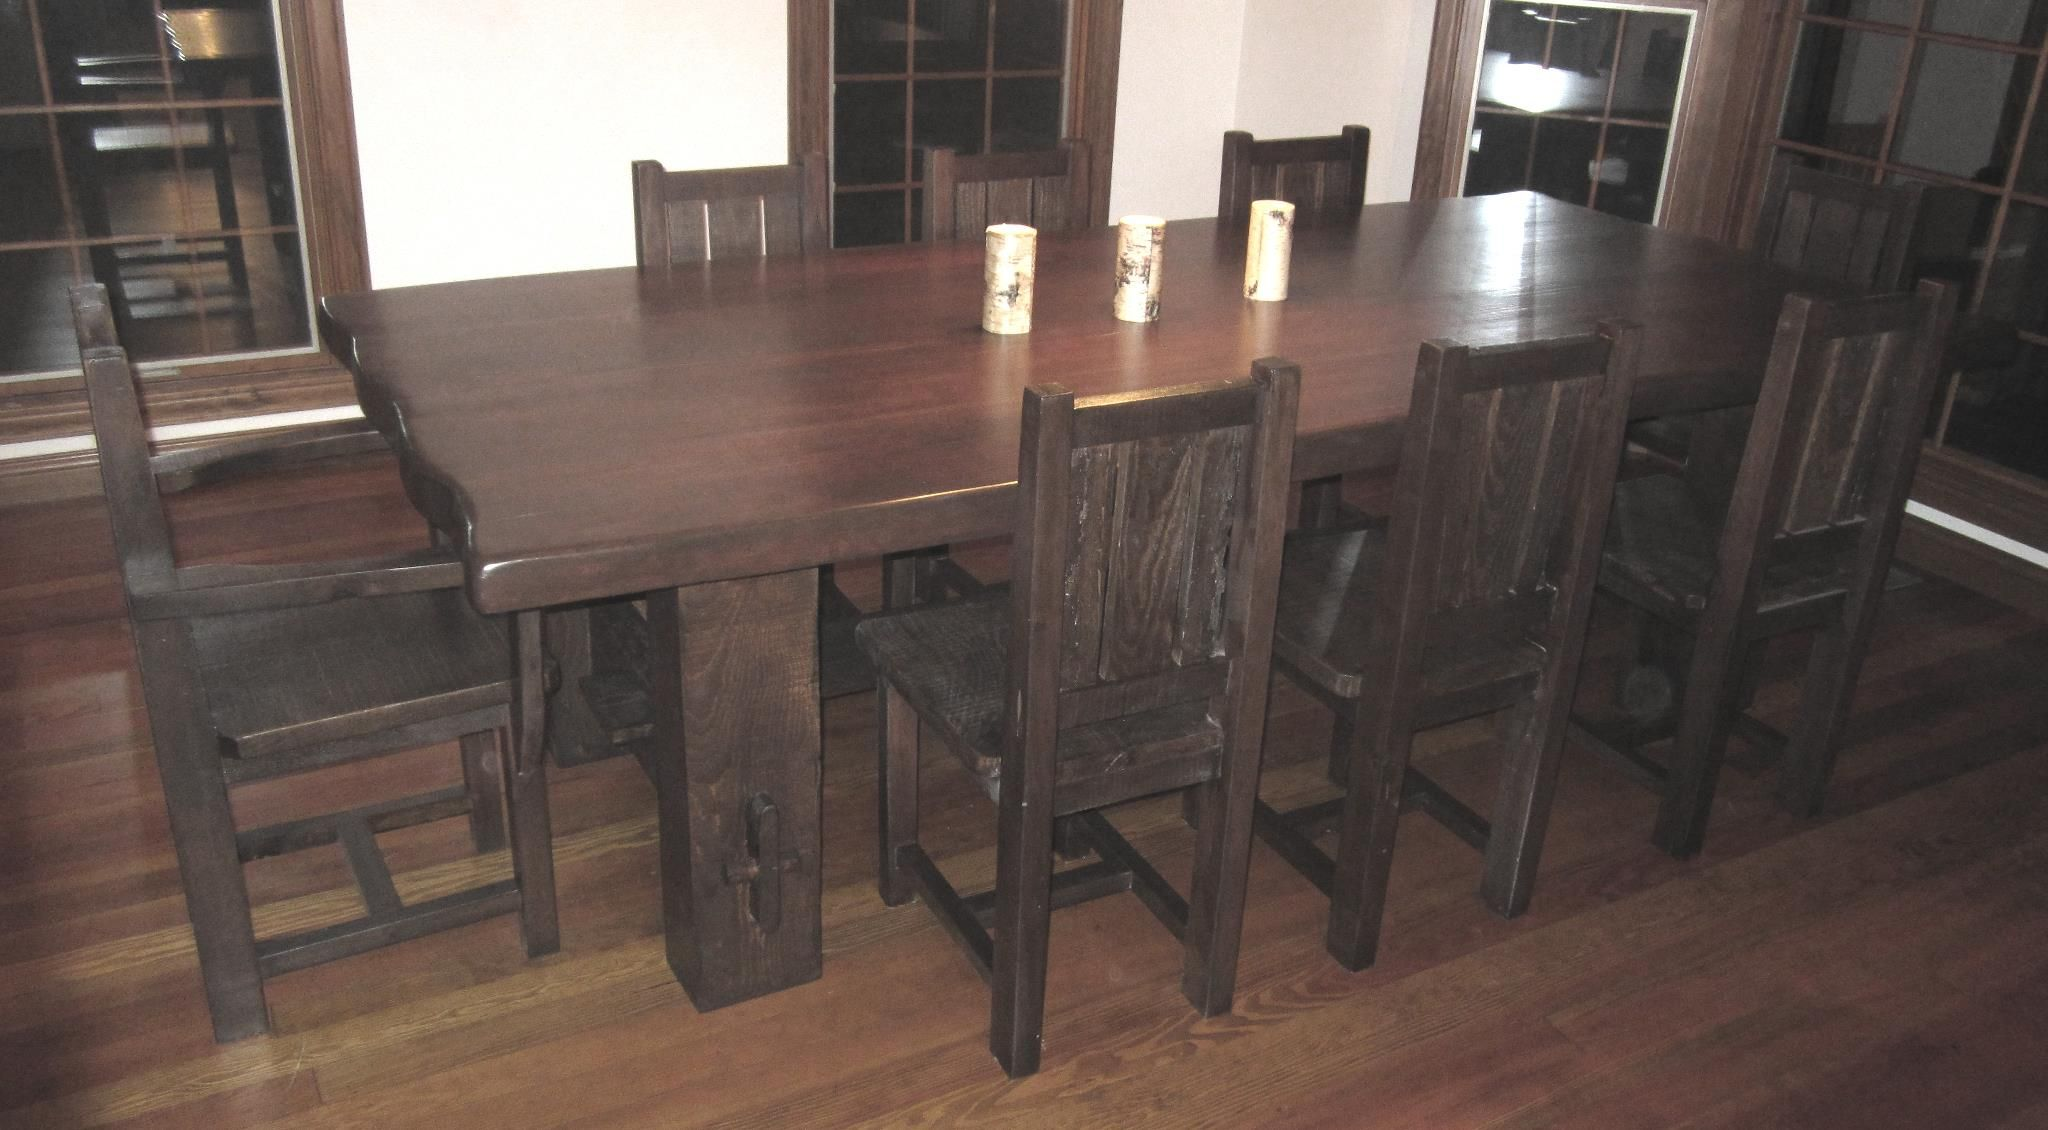 Barn Wood Harvest Table Custom Built To Fit Your Needs Barn Wood Fair Custom Built Dining Room Tables Review